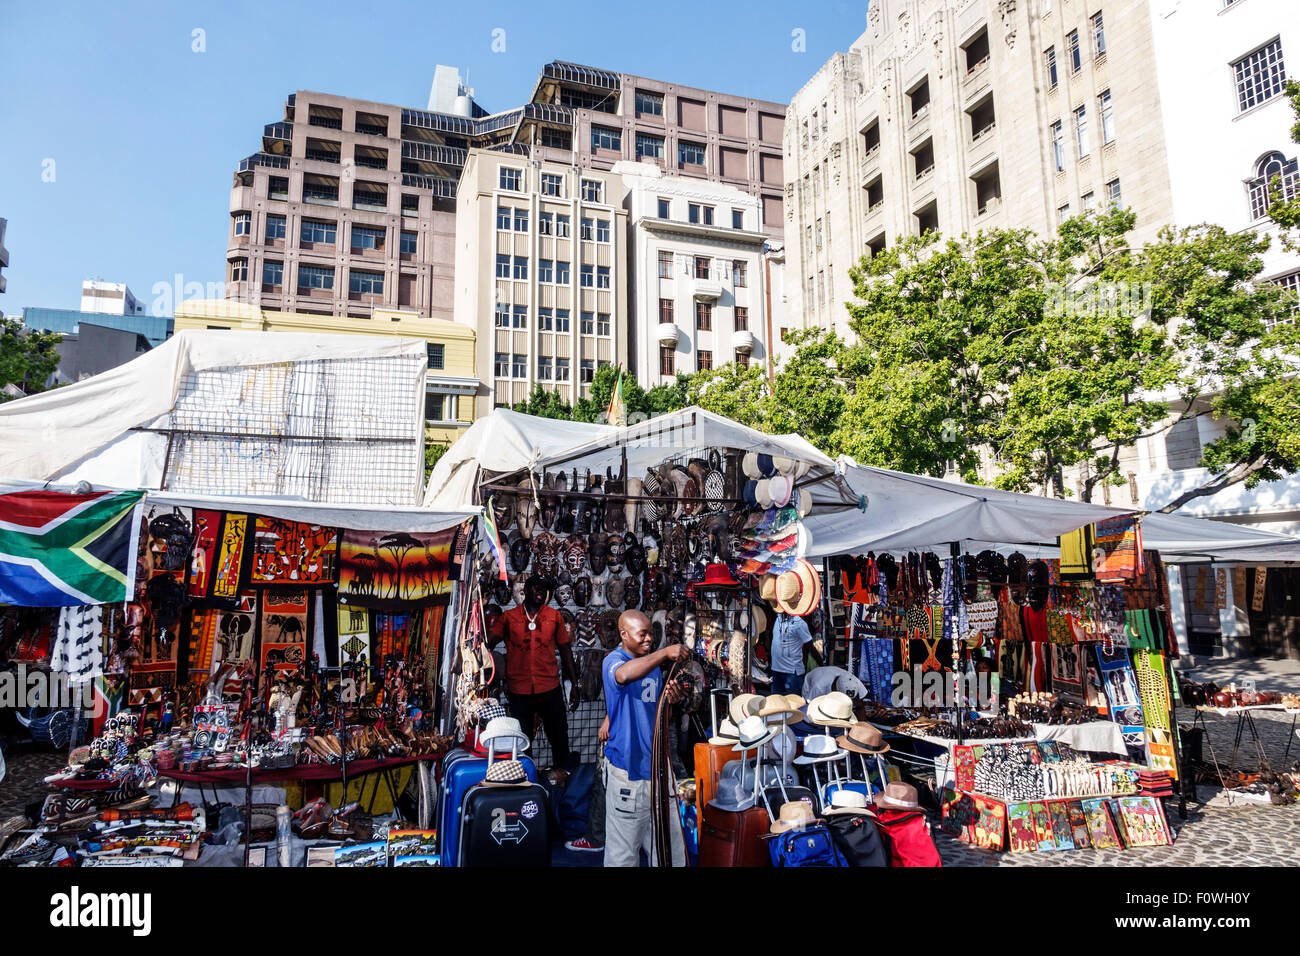 Cape Town South Africa African City Centre center Green Market Square shopping souvenirs arts & crafts vendor stall Stock Photo